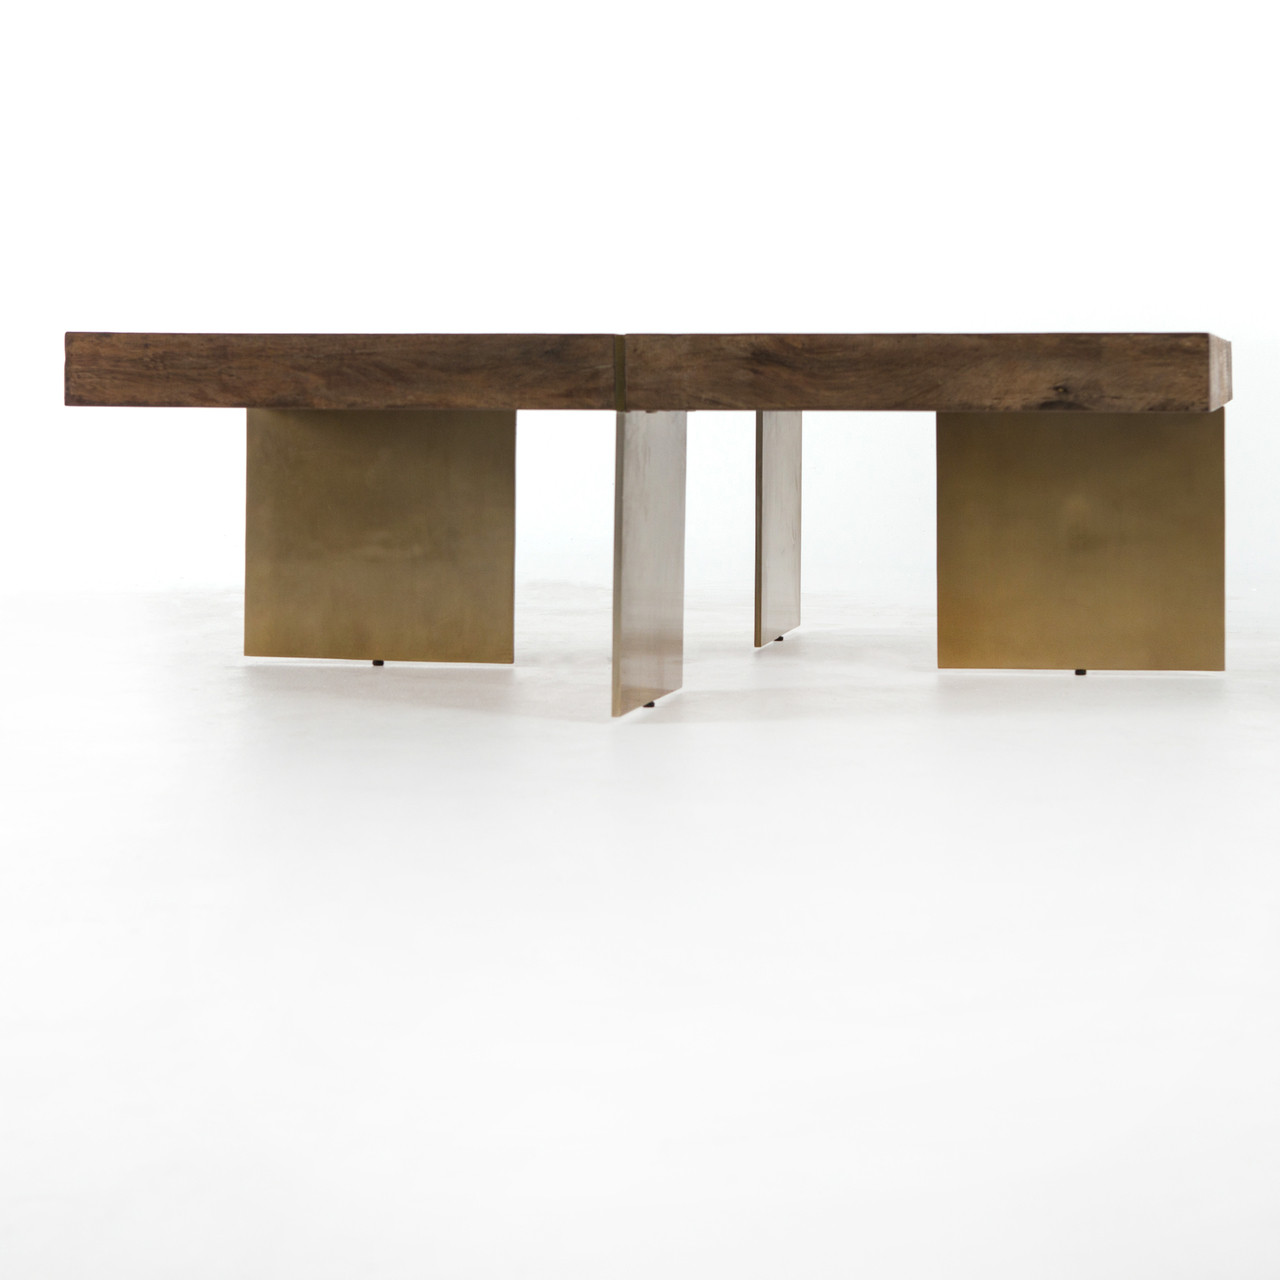 Vedel Industrial Loft Zinc Wood Rectangle Coffee Table: Alec Reclaimed Wood Square Coffee Table With Brass Legs